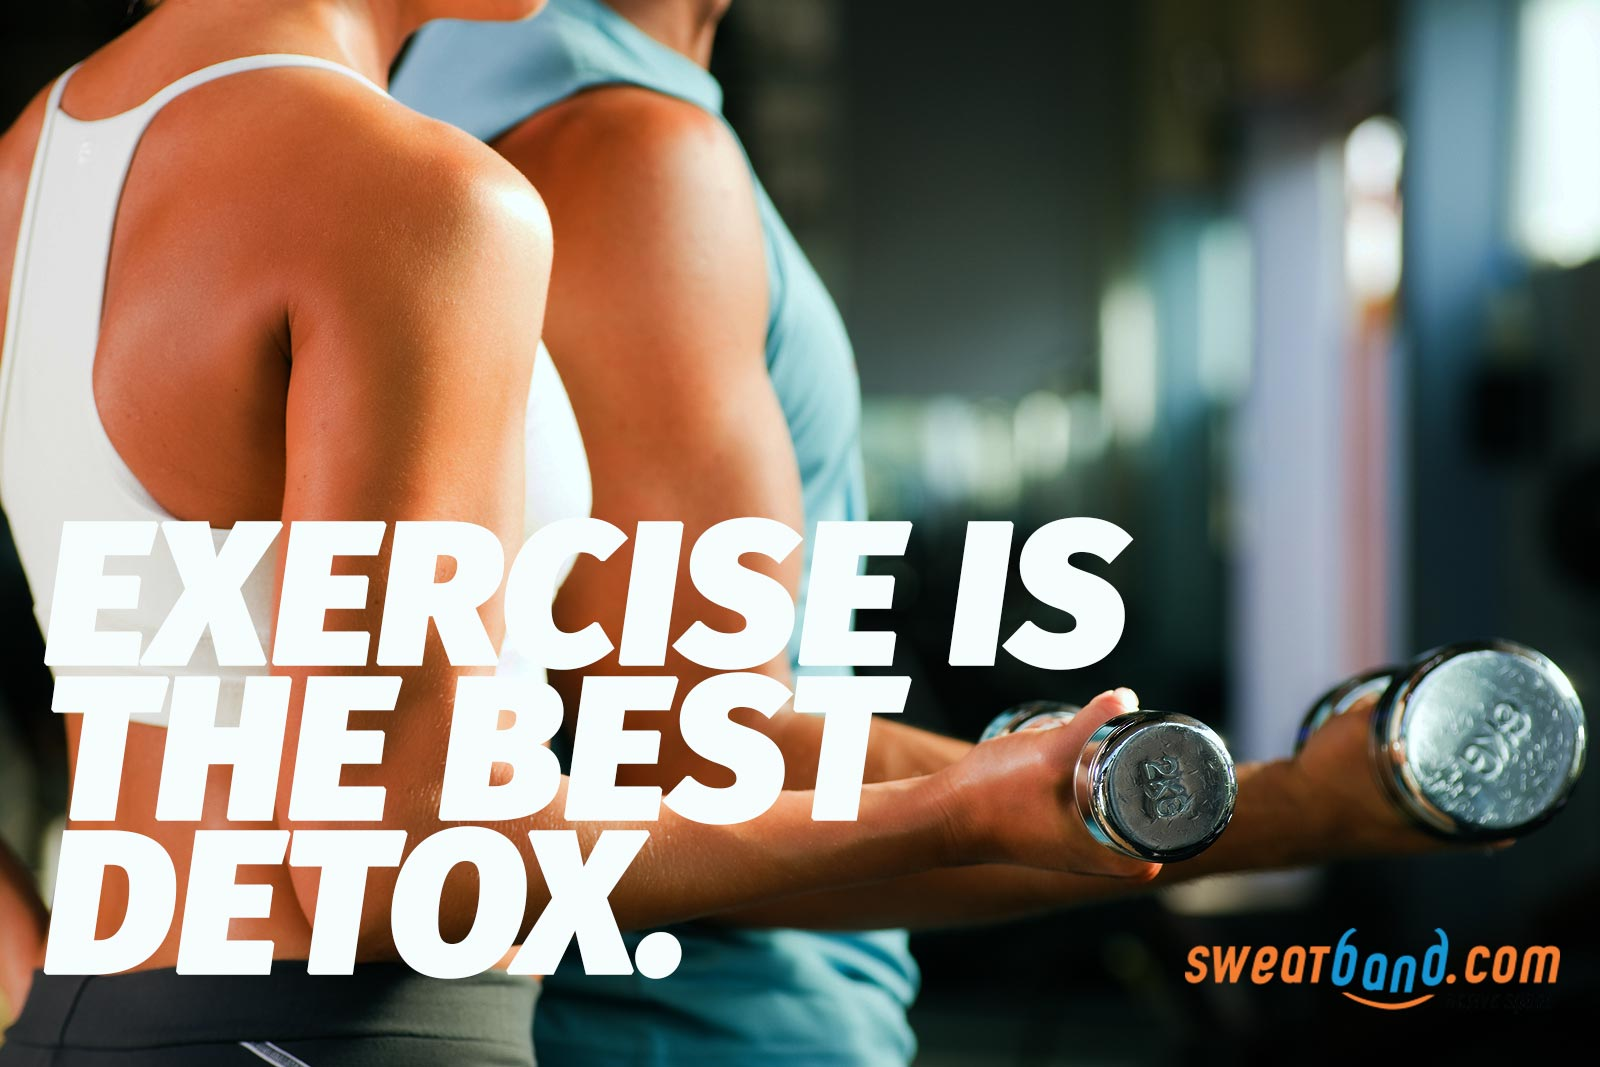 Exercise is the best detox.